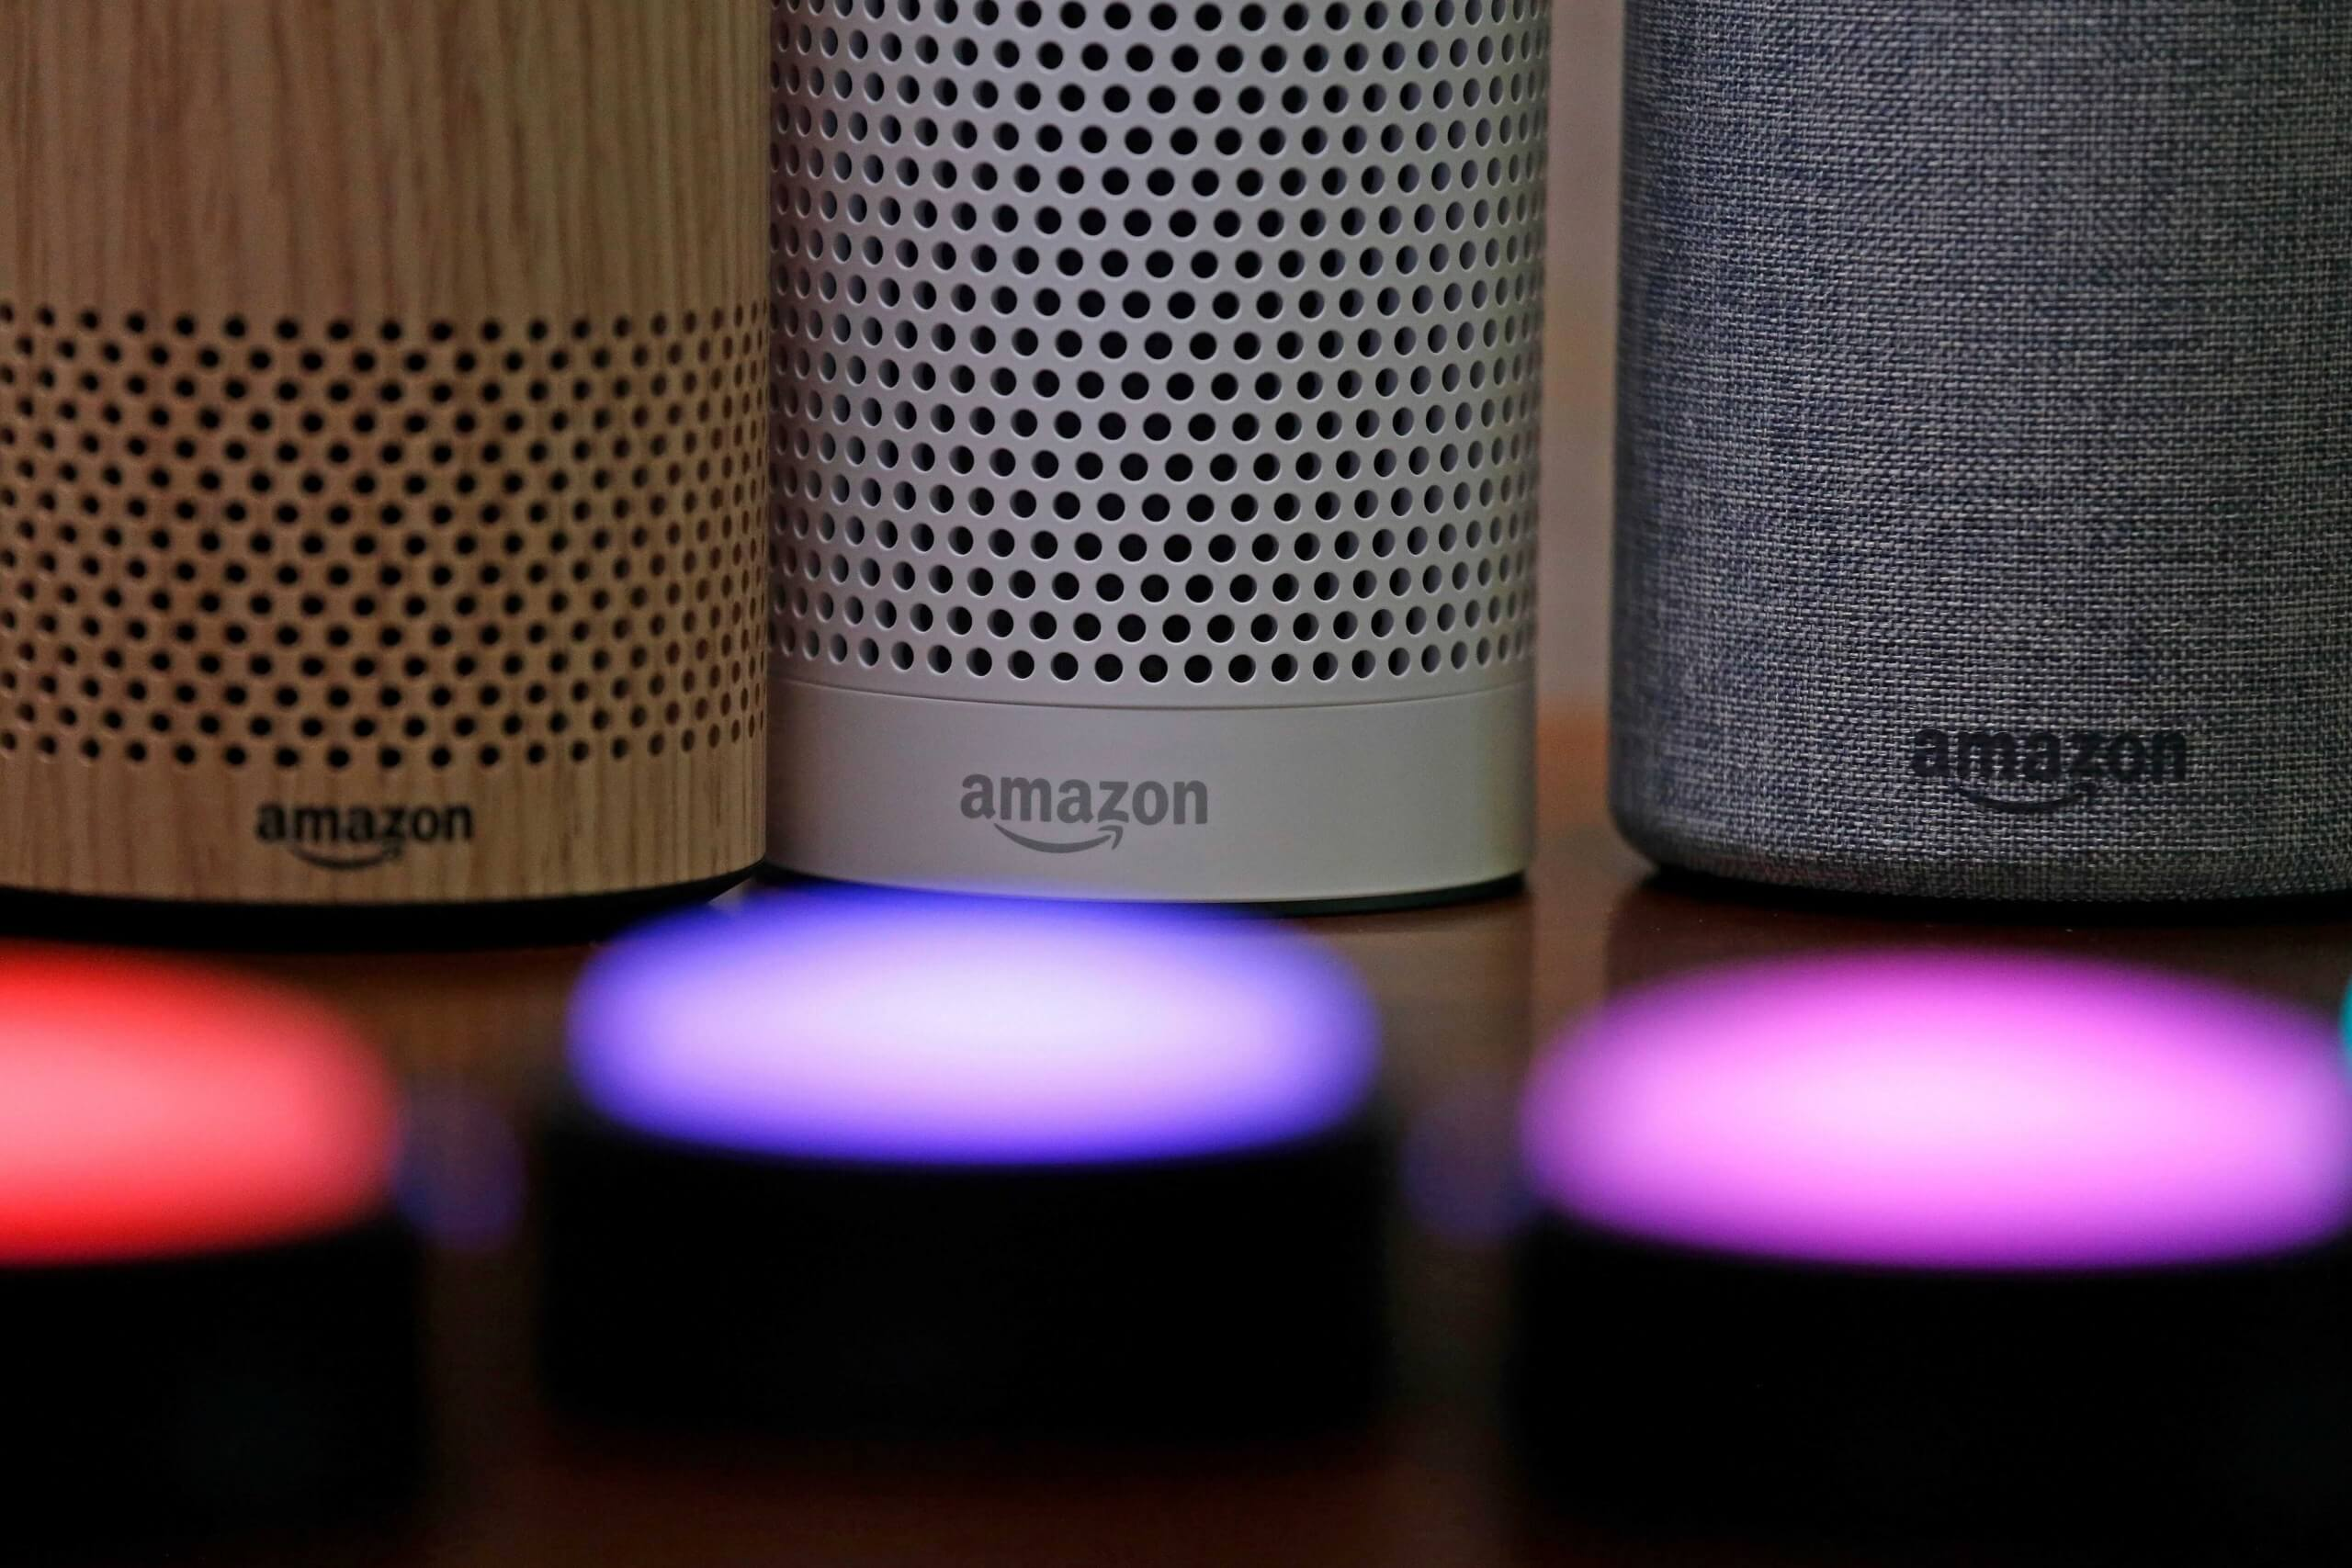 Researchers detail a now fixed exploit in Alexa that could have exposed your voice history and personal information